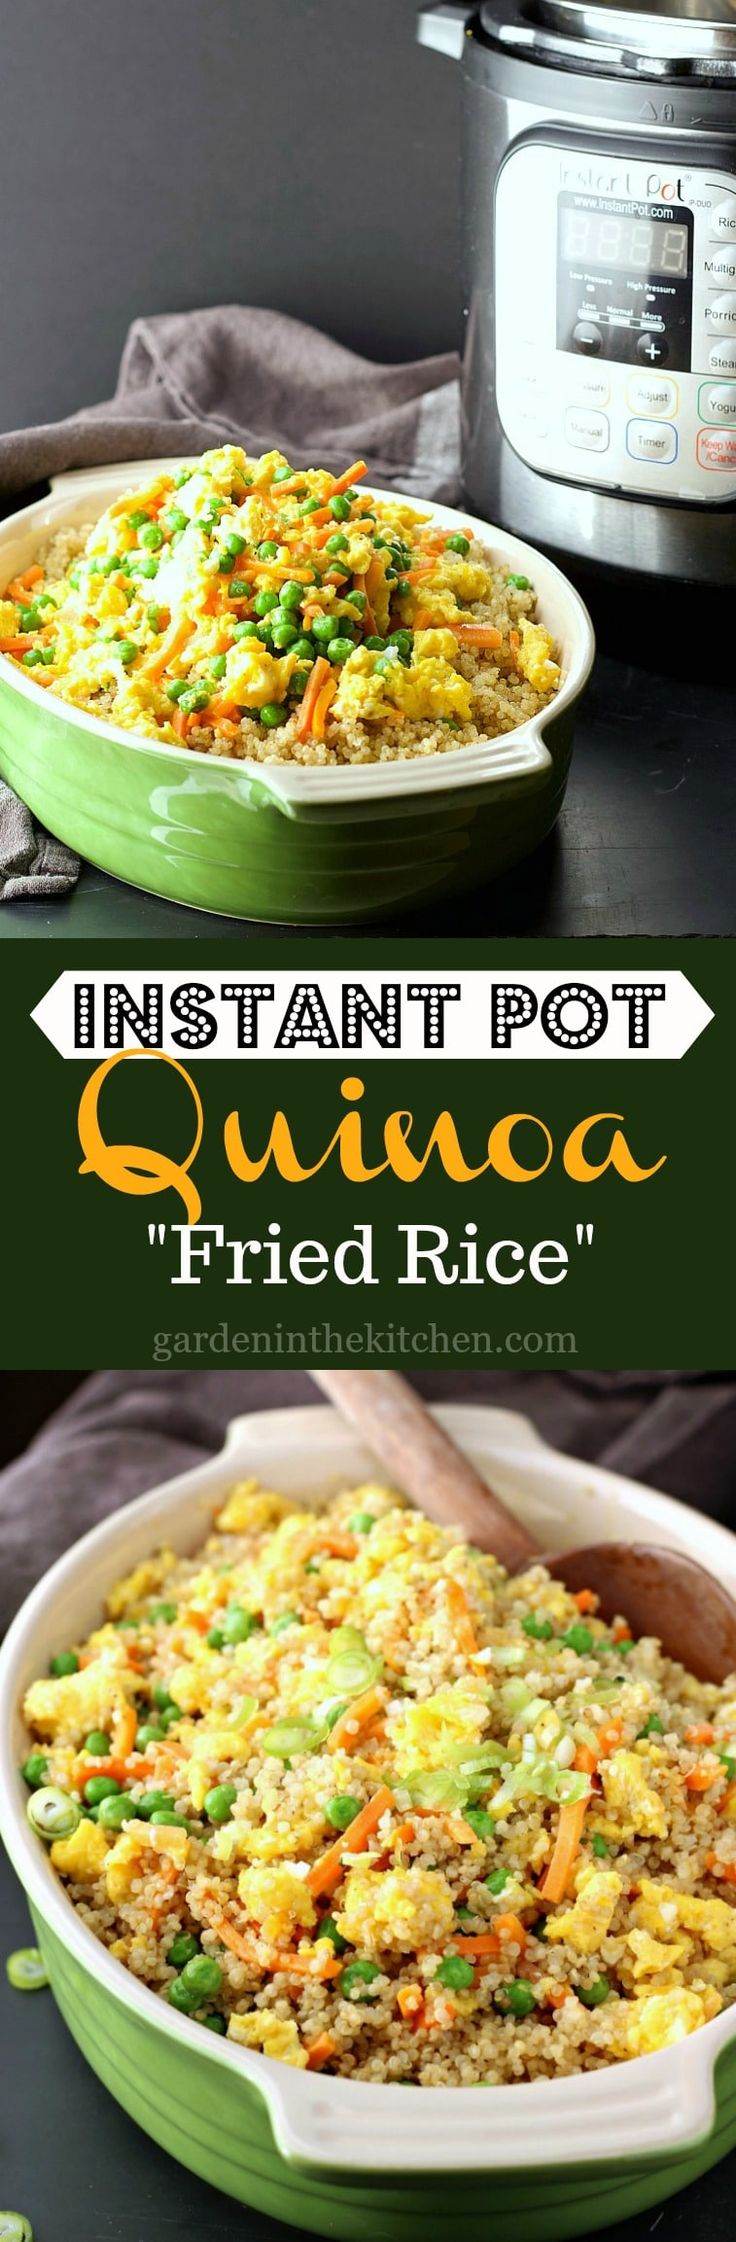 """A healthier take on the classic Vegetable Fried Rice, this Instant Pot Quinoa """"Fried Rice"""" is just as delicious and will make you feel good too!"""